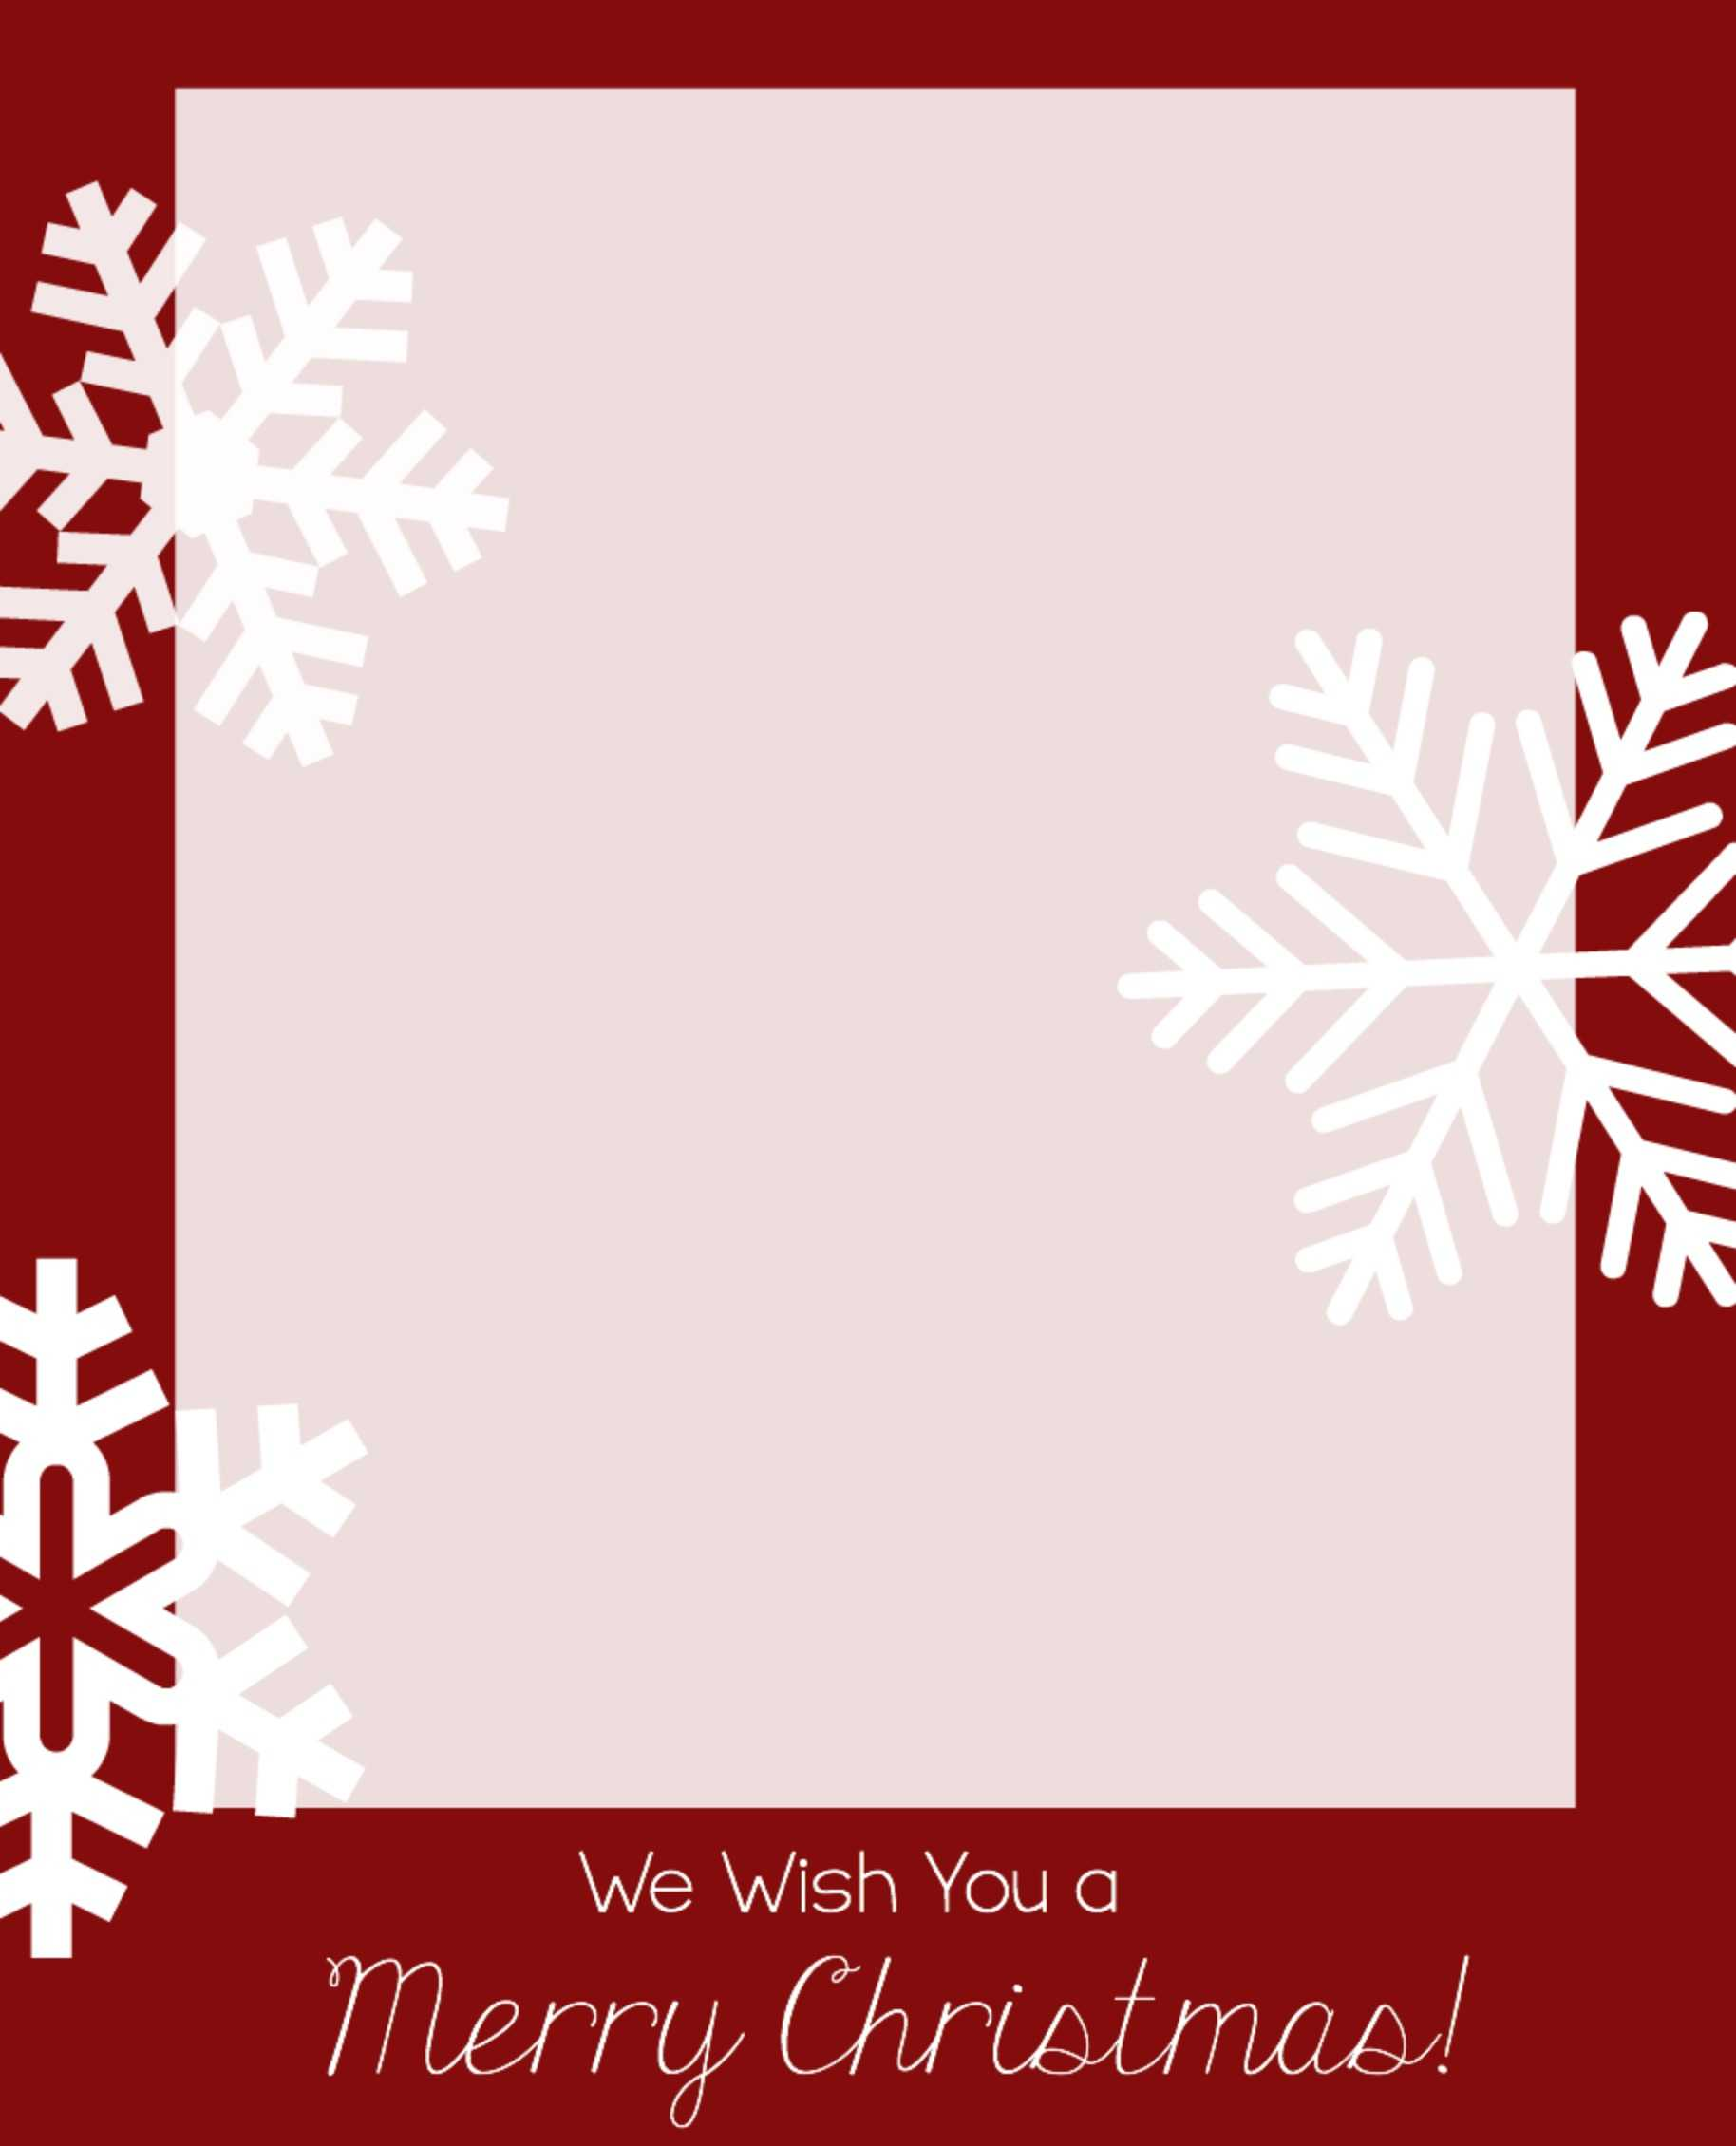 Free Christmas Card Templates - Crazy Little Projects regarding Print Your Own Christmas Cards Templates